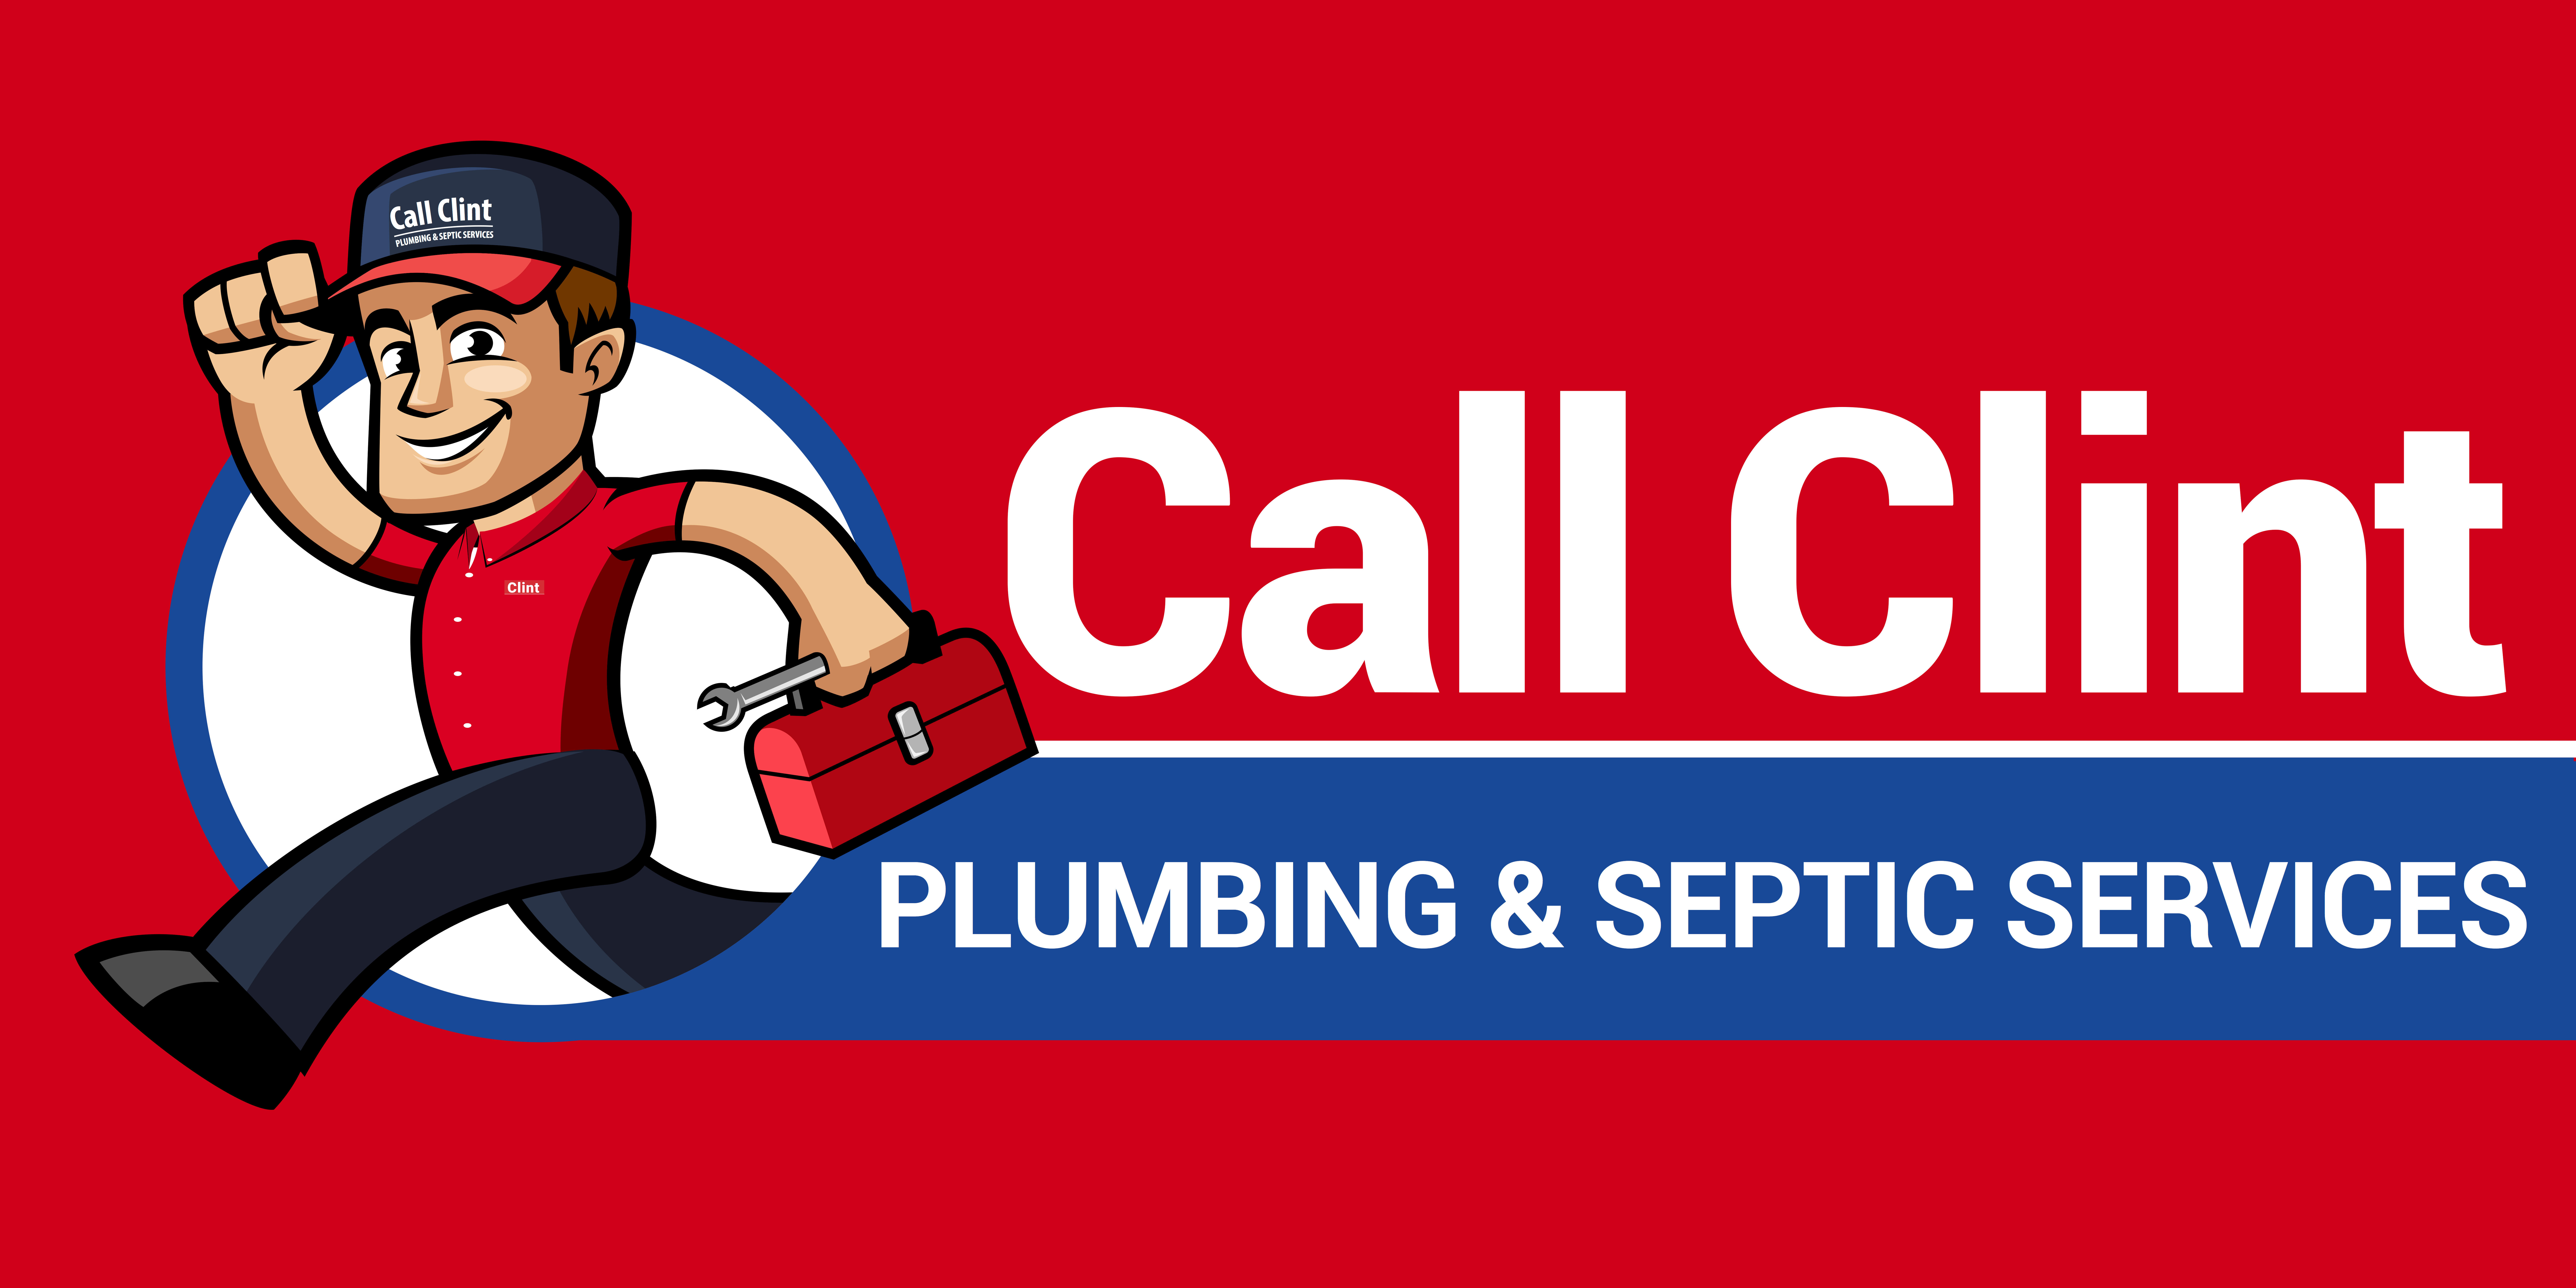 Call Clint plumbing is a full-service plumbing and drain cleaning company serving The Hudson Valley.